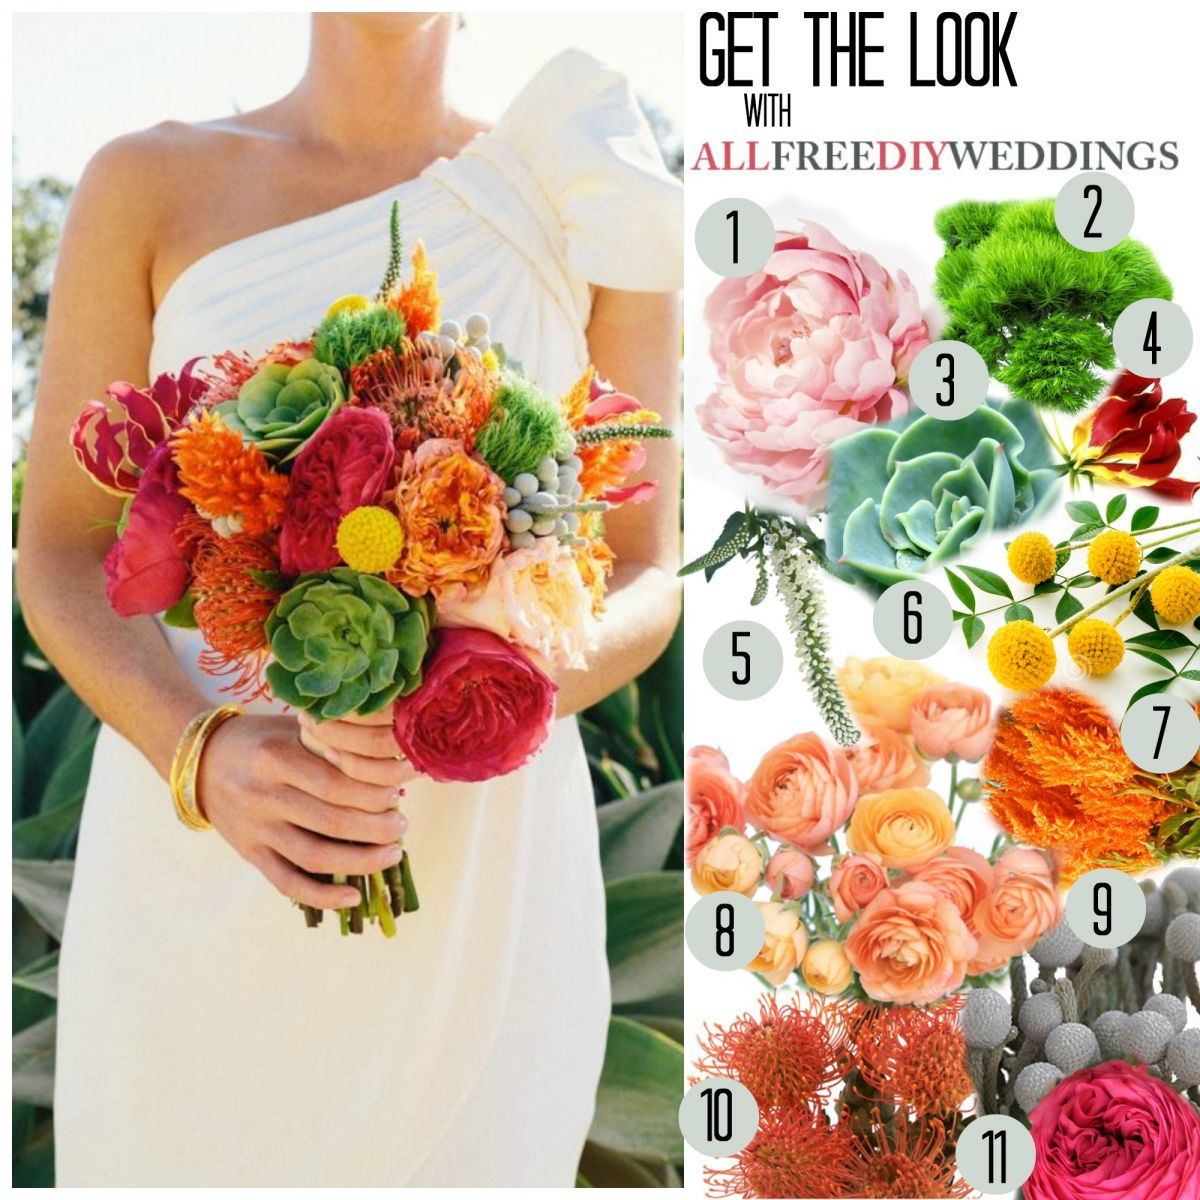 Making Your Own Wedding Flowers: Exotically Vibrant DIY Bouquet